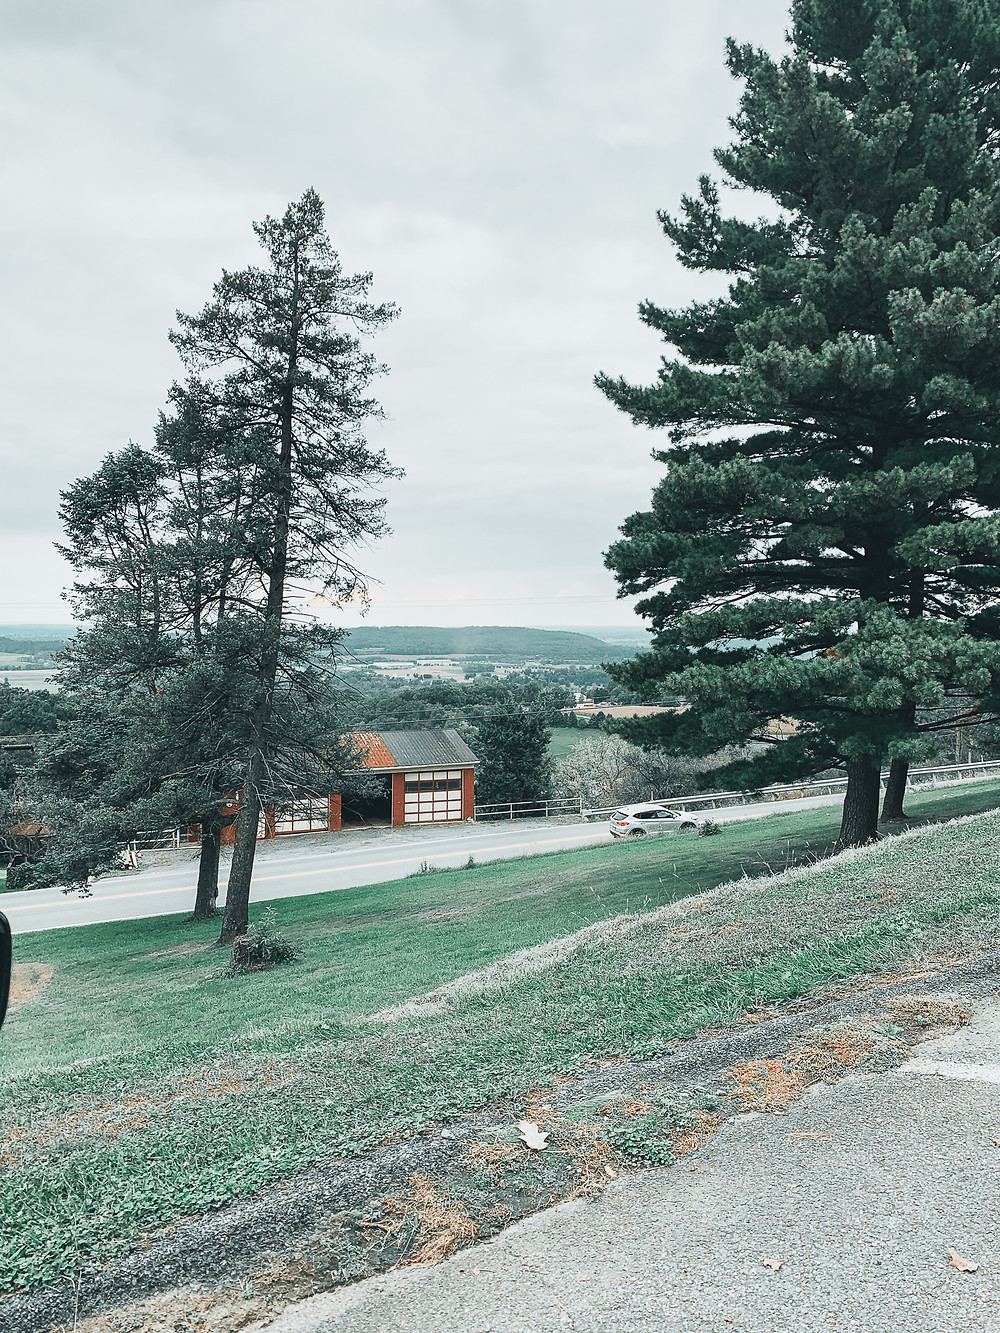 Trees, hill, green grass, scenic view, pine trees